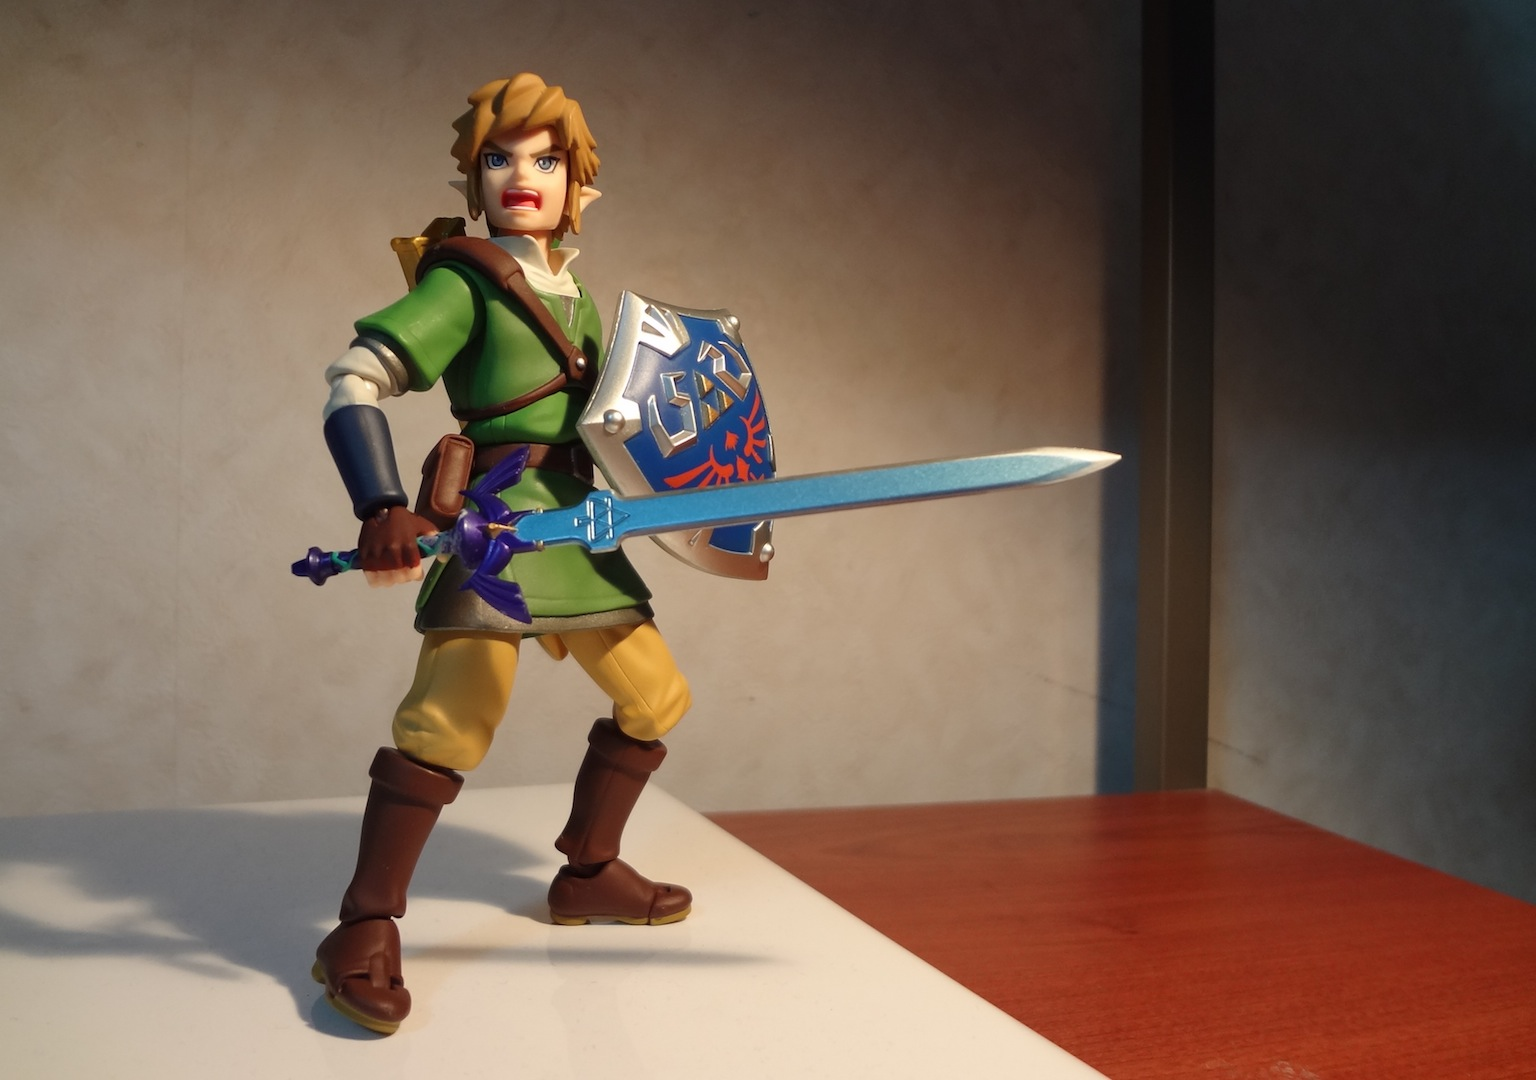 Link Figma Figure Headed to North America